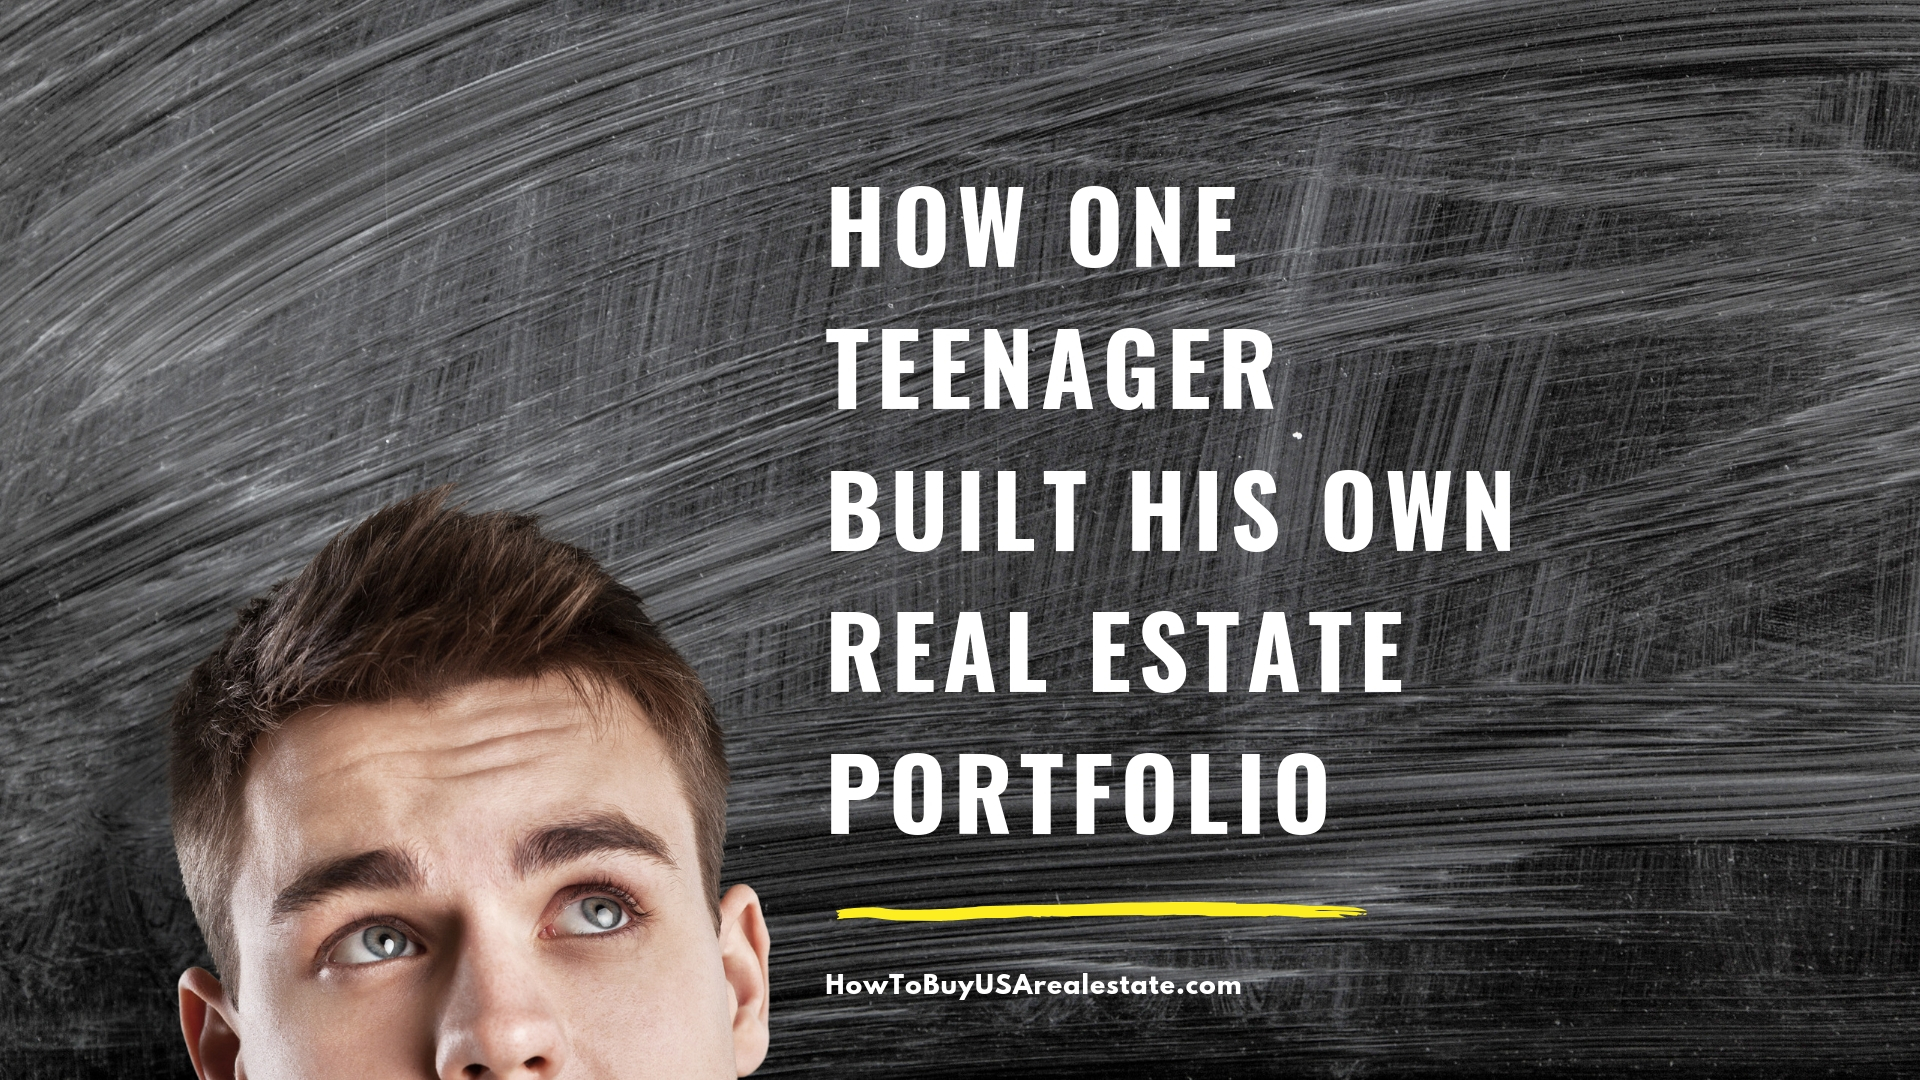 How one teenager built his own real estate poertfolio (1).jpg